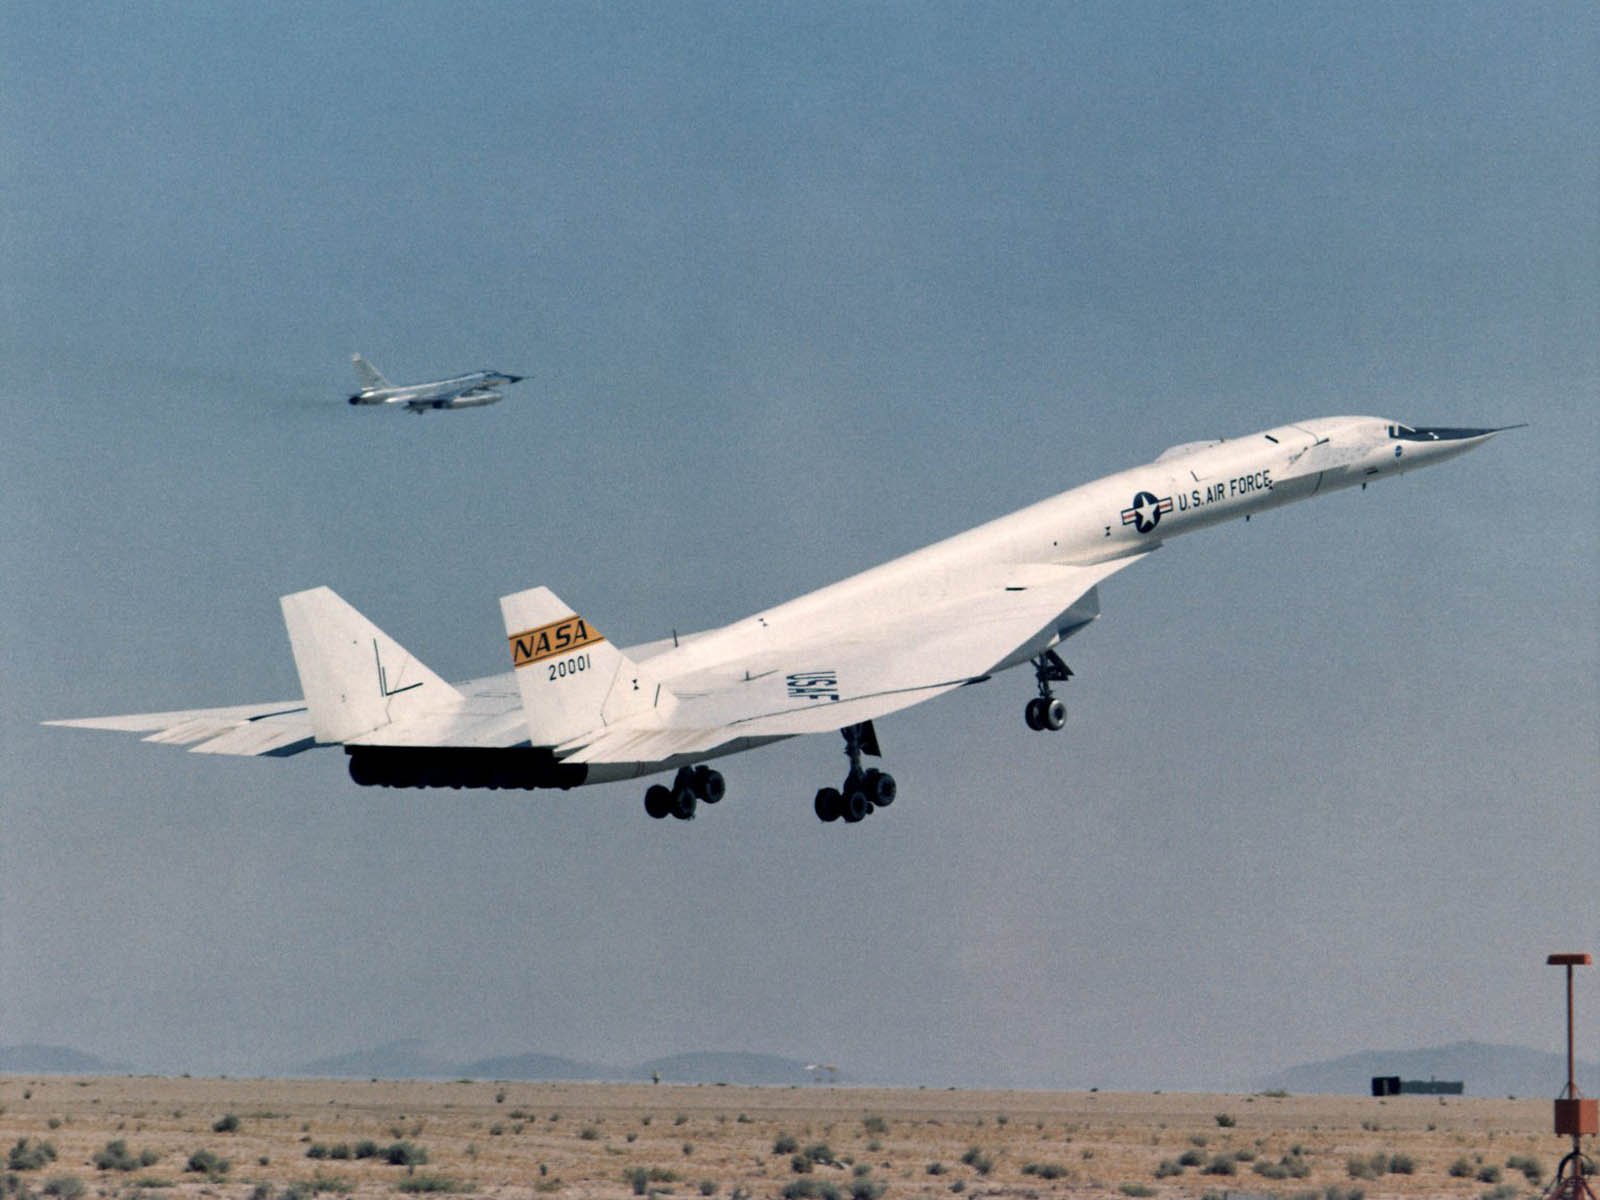 wallpapers: XB 70 Aircraft Wallpapers